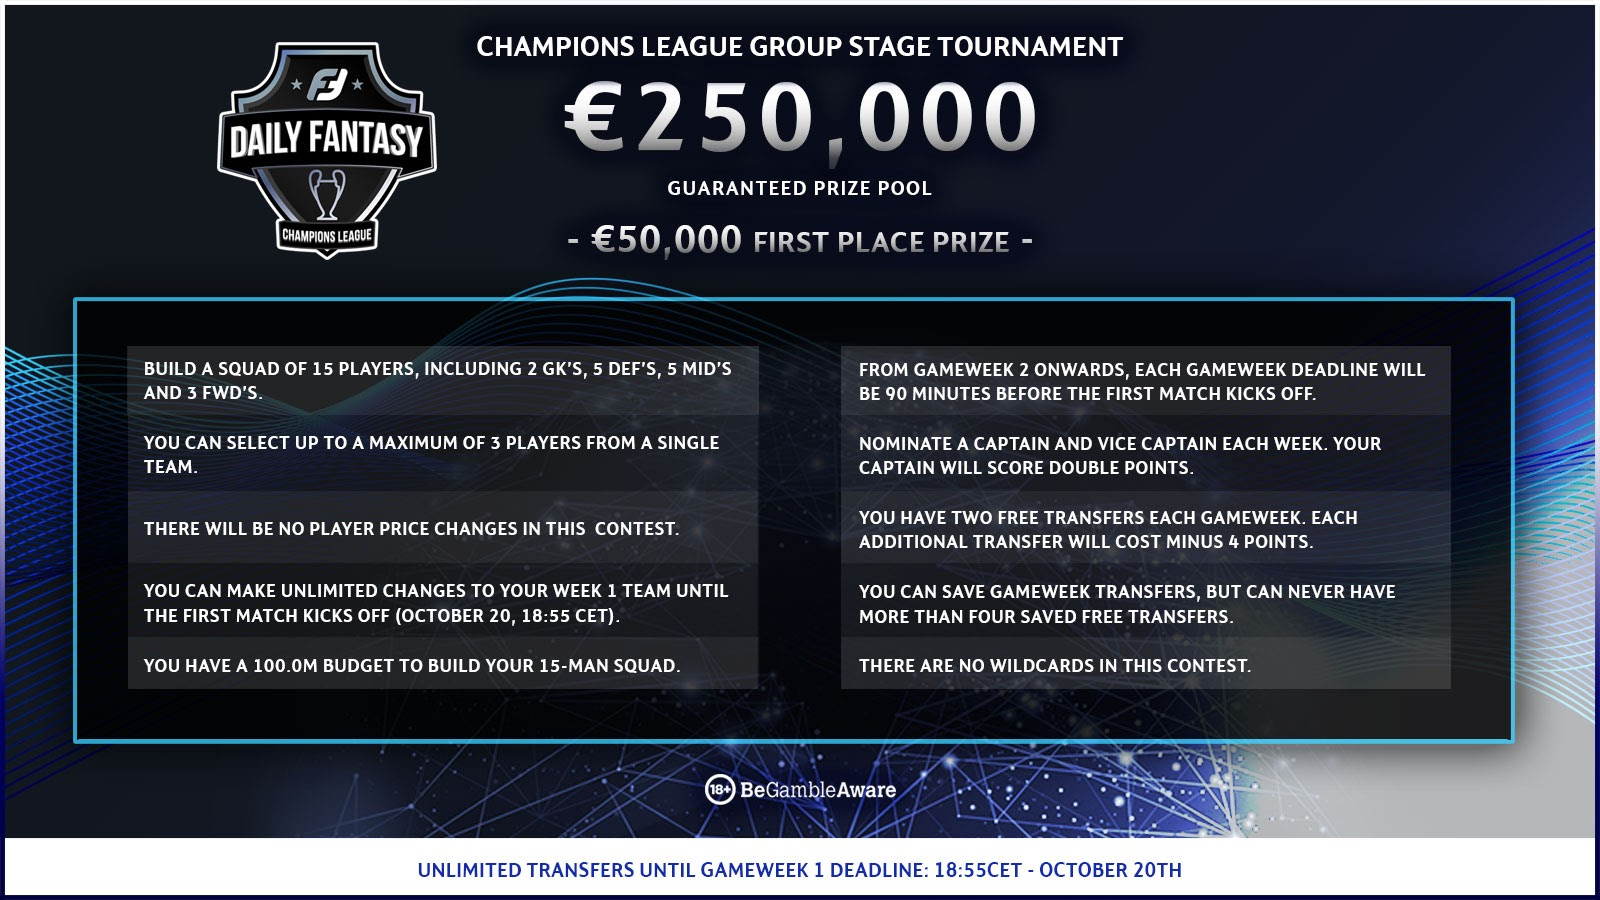 Champions League Fantasy Rules